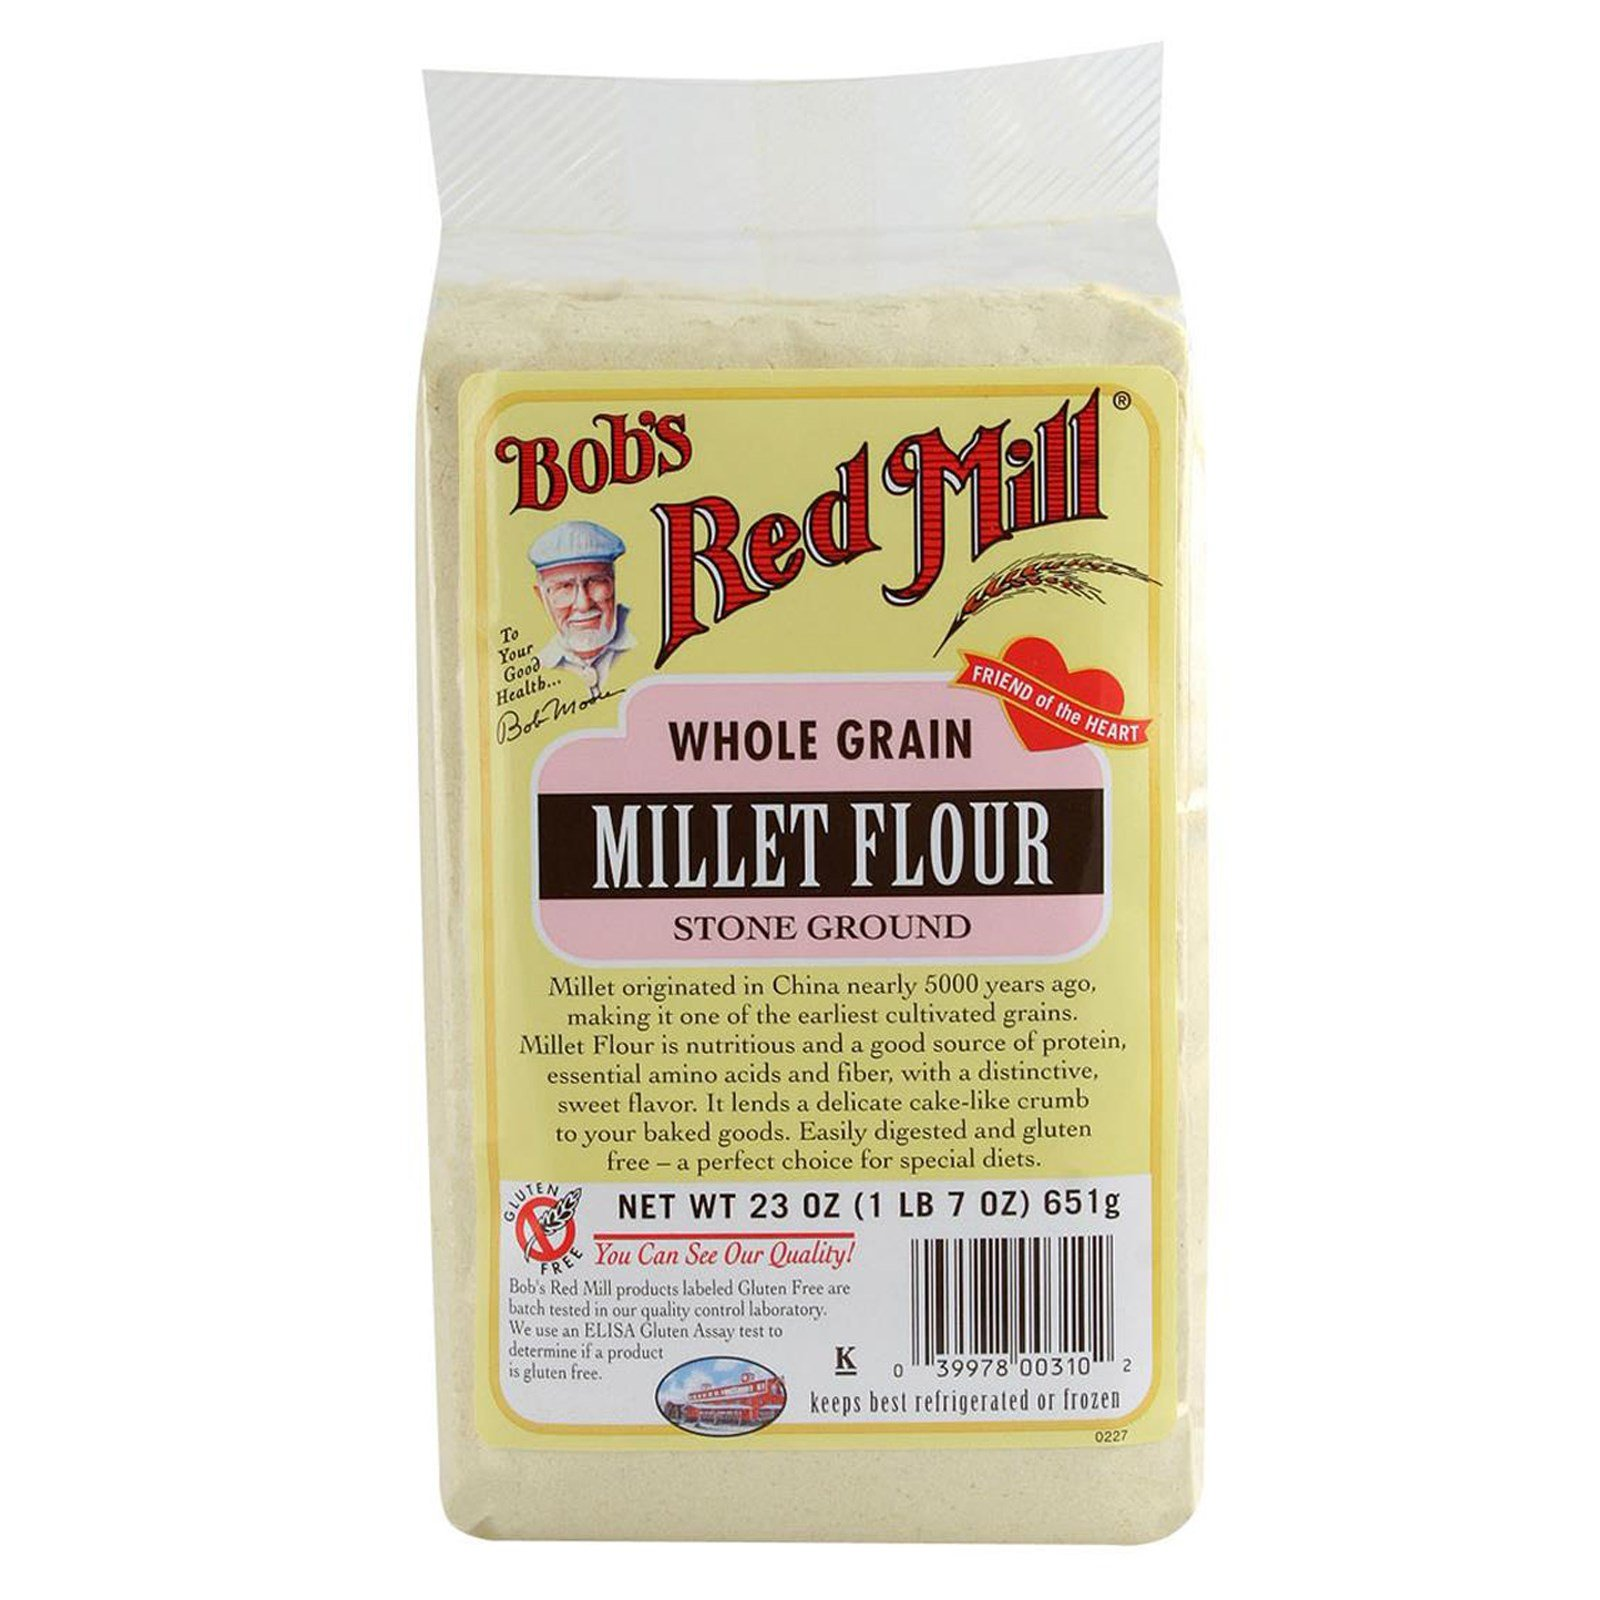 Bob's Red Mill, Whole Grain, Millet Flour, Stone Ground, 23 oz(Pack of 2)